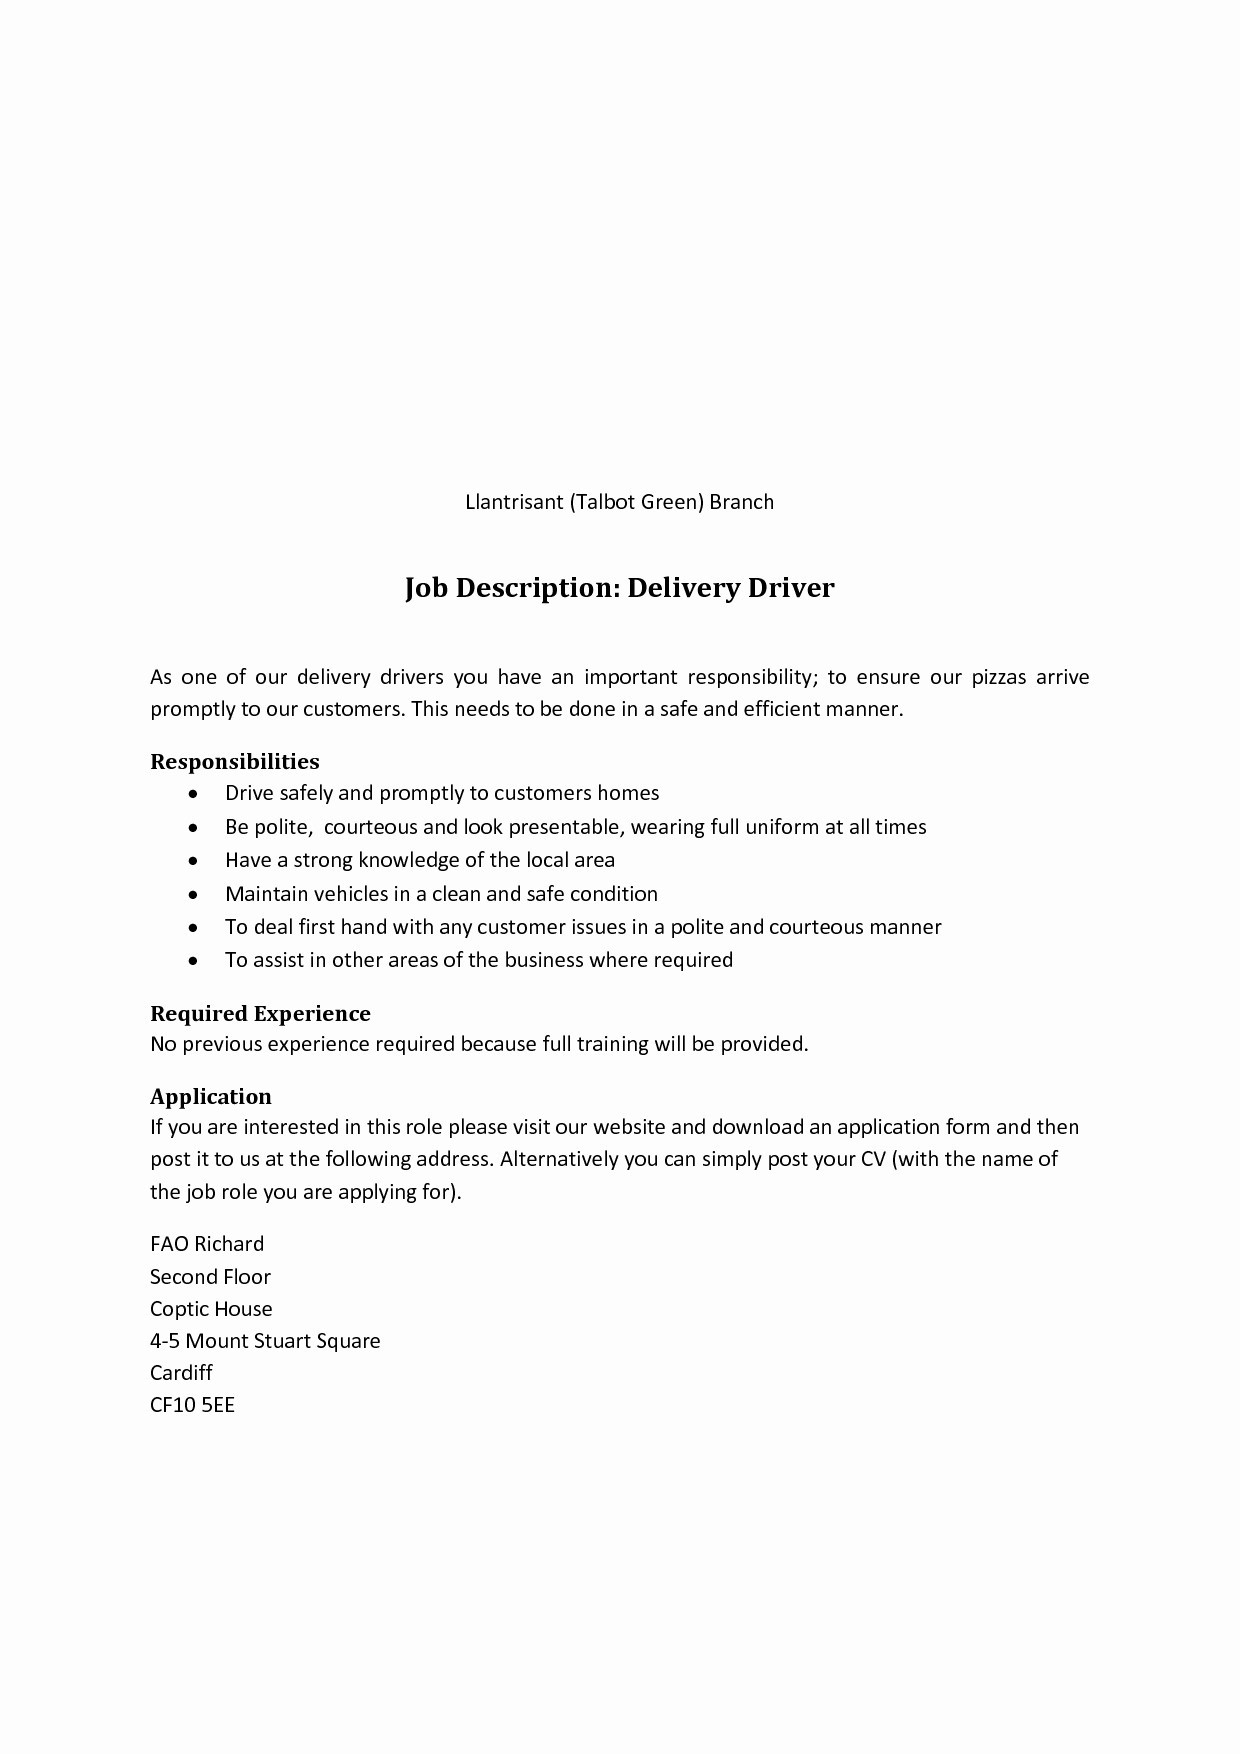 12 cdl truck driver job description for resume collection